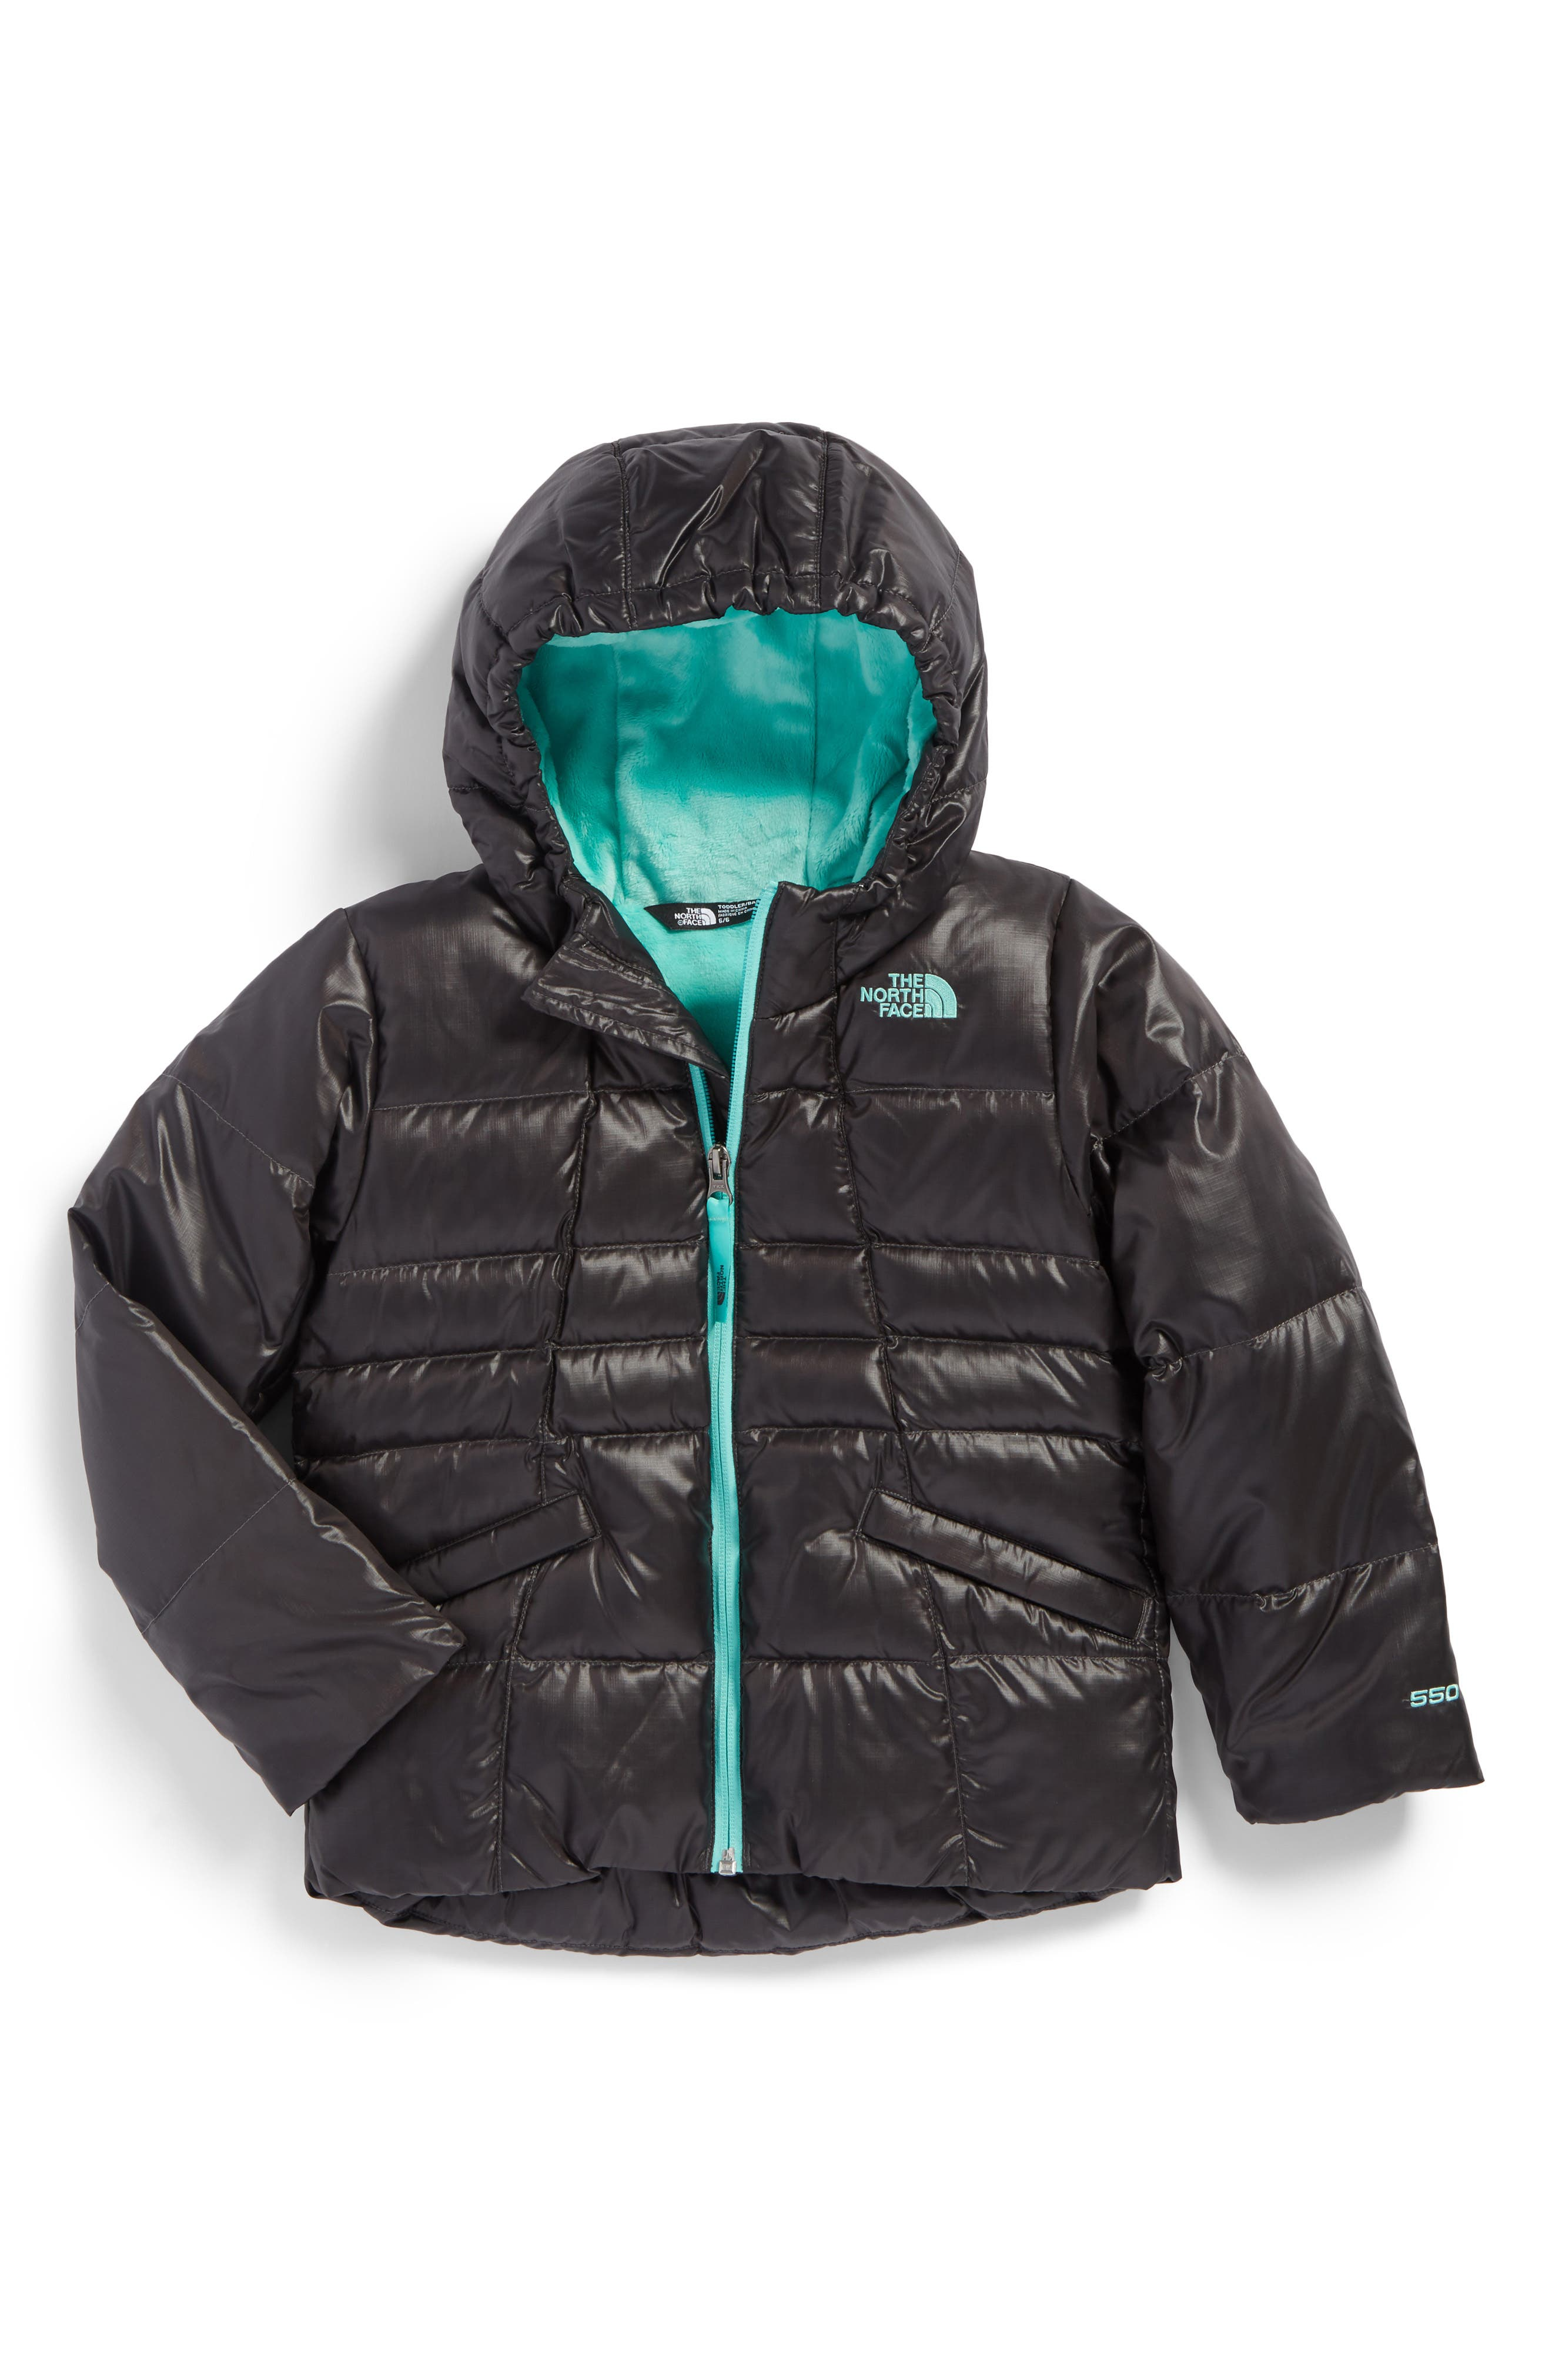 Moondoggy 2.0 Water Repellent Jacket,                         Main,                         color,